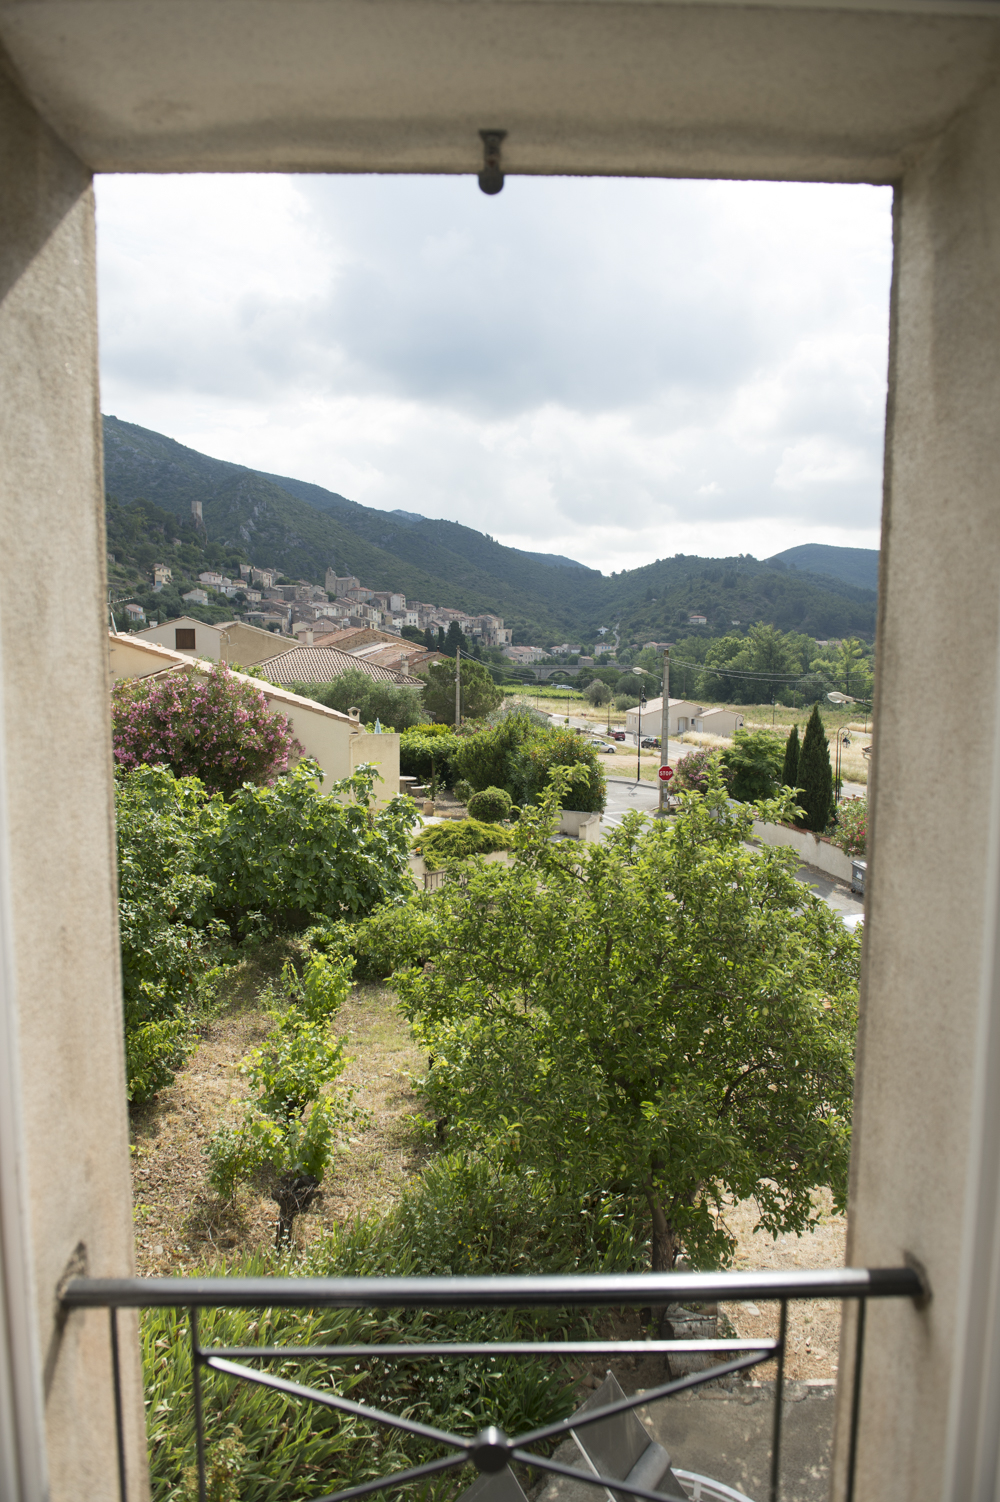 Haut_WindowView2.jpg